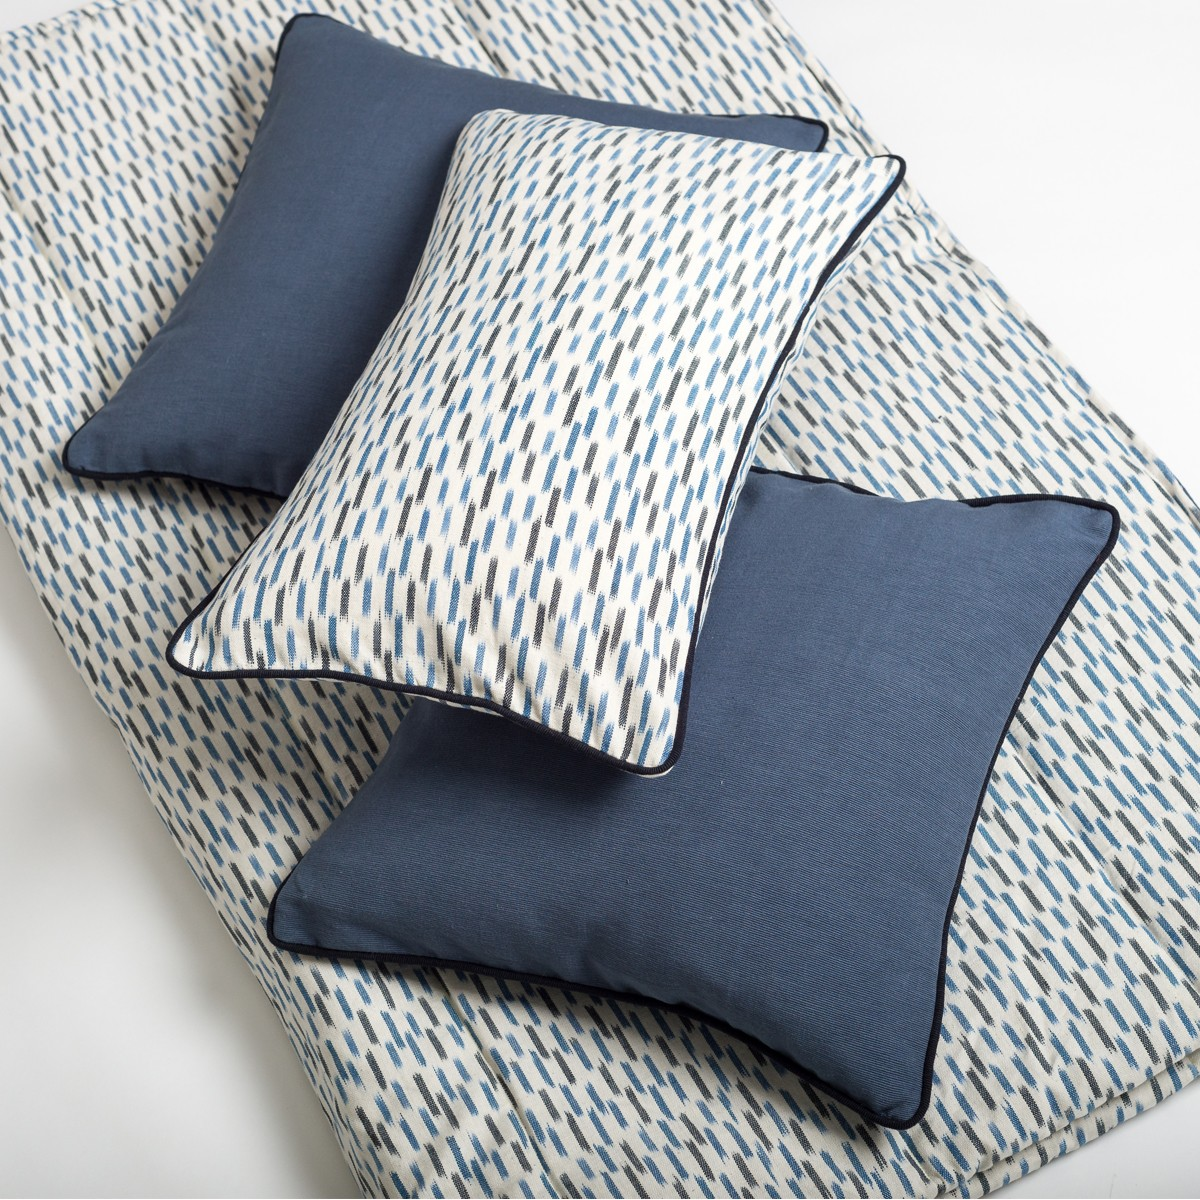 Aqua - Blue Cushion Set for Bedroom